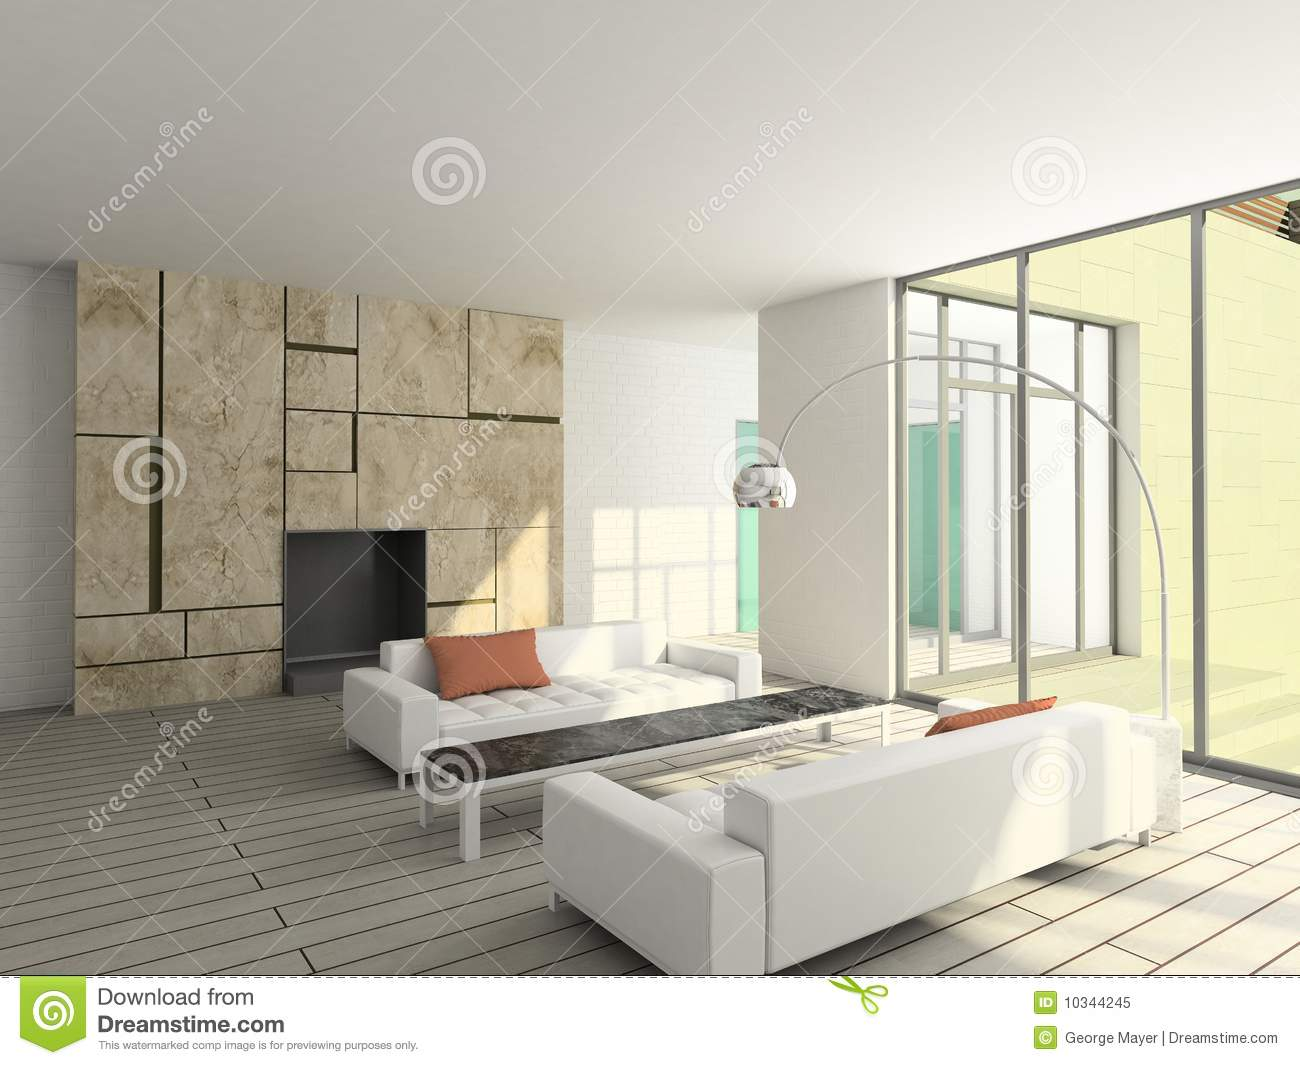 3d render modern interior of living room stock photos   image: 4770843